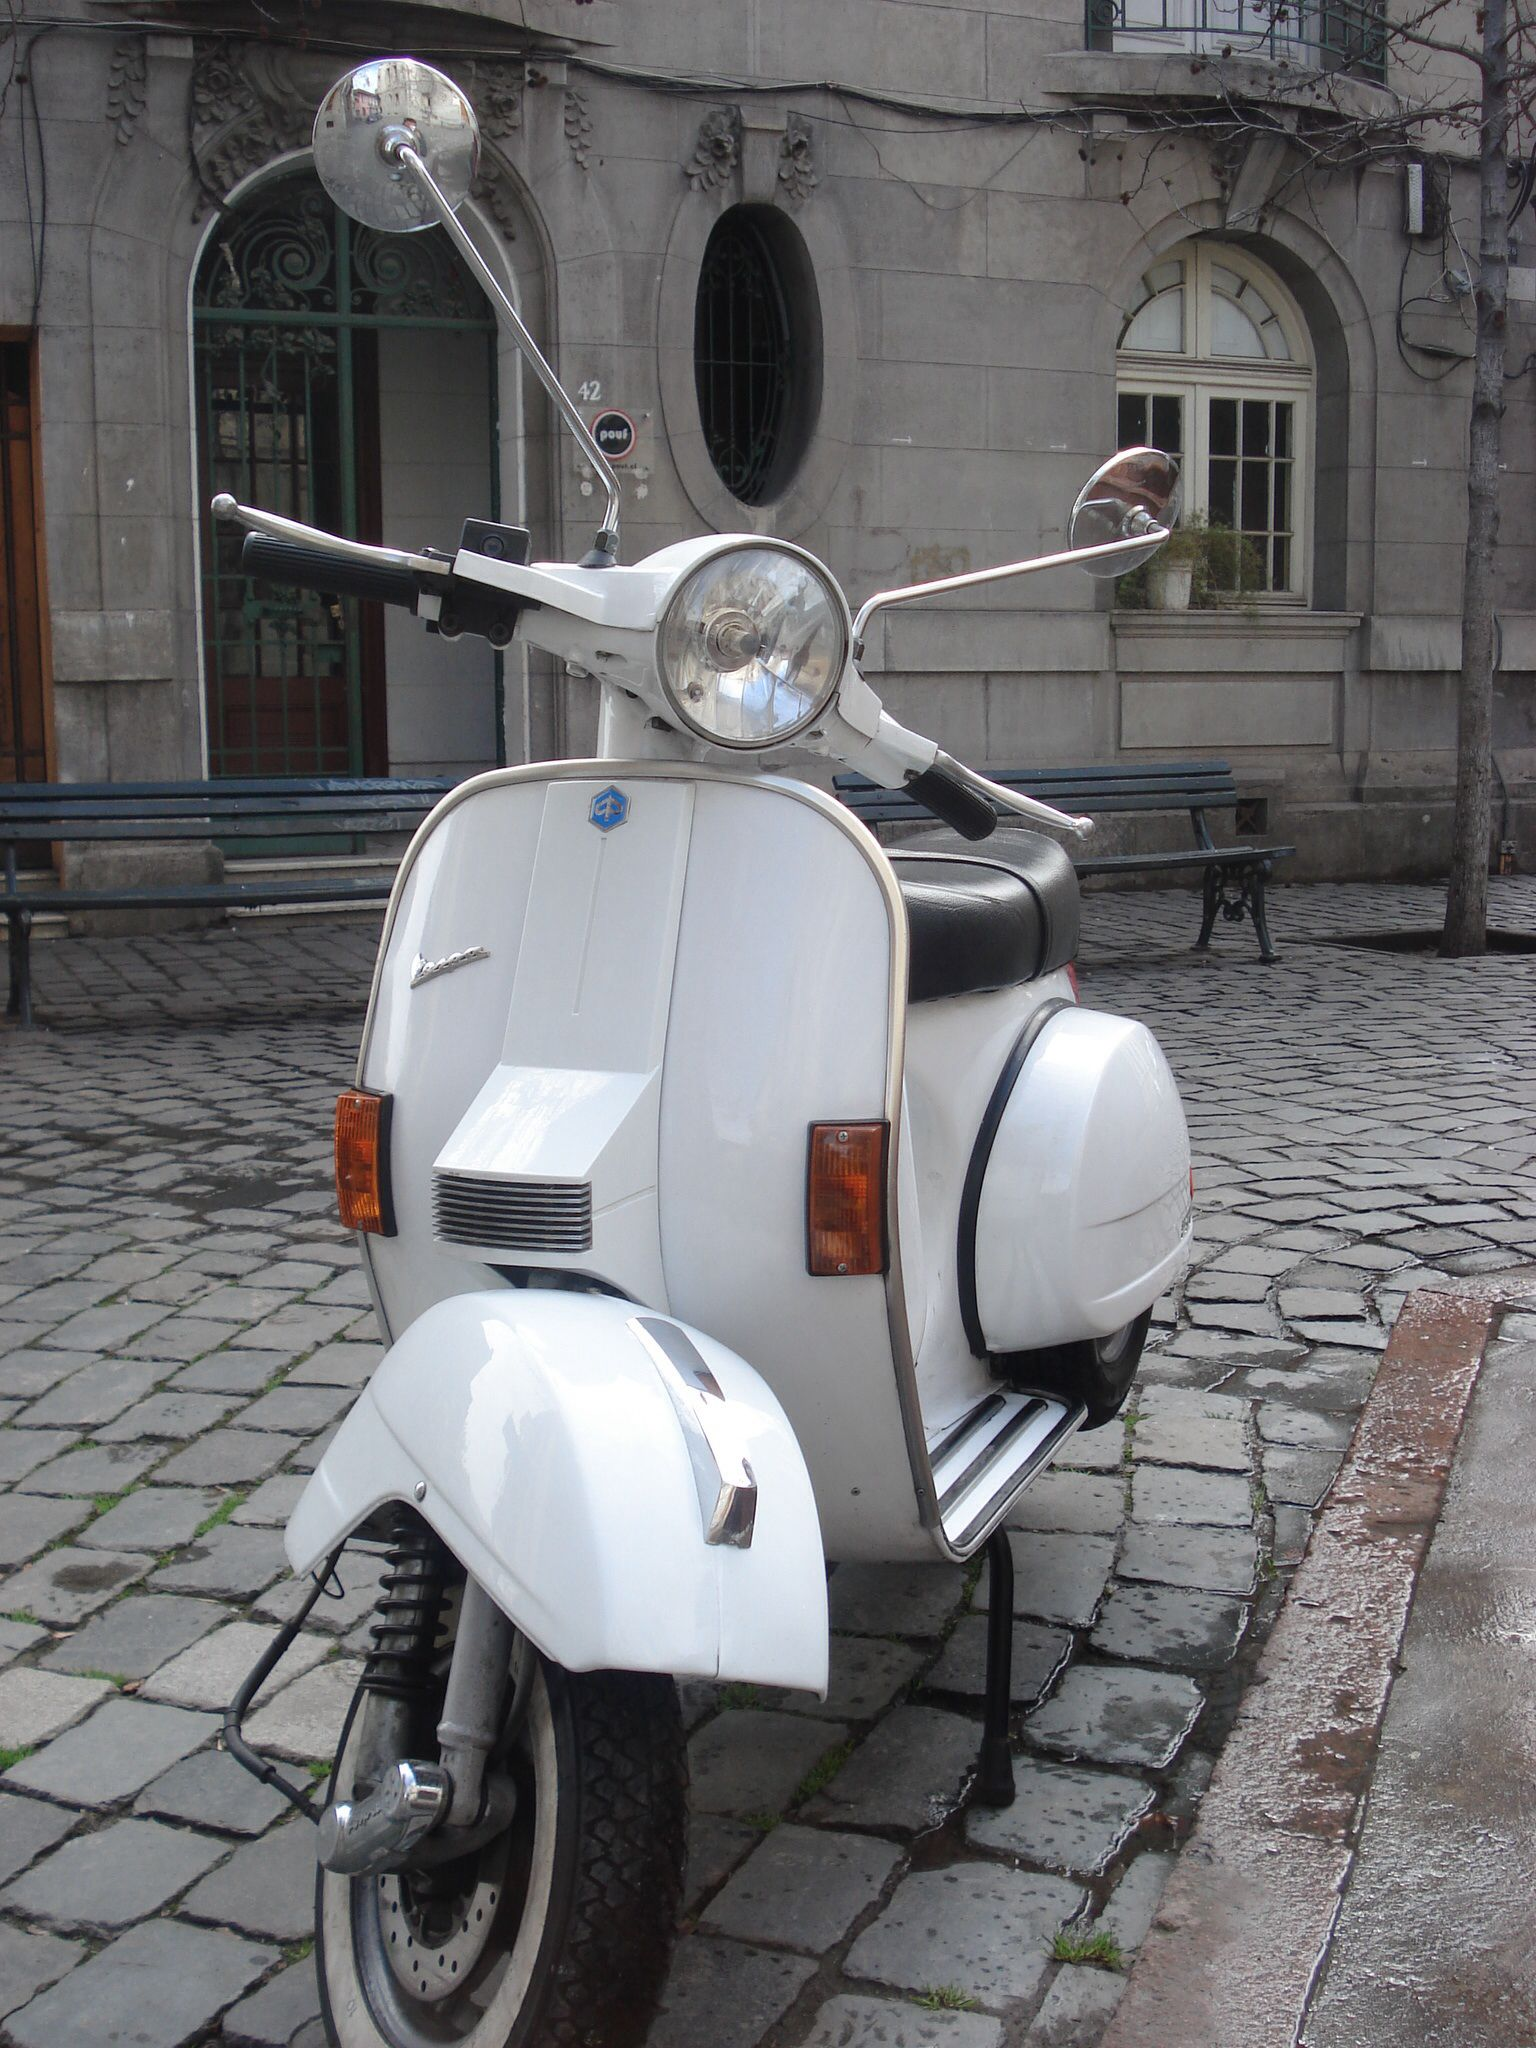 vespa px 150 2001 santiago chile vespa lambretta. Black Bedroom Furniture Sets. Home Design Ideas